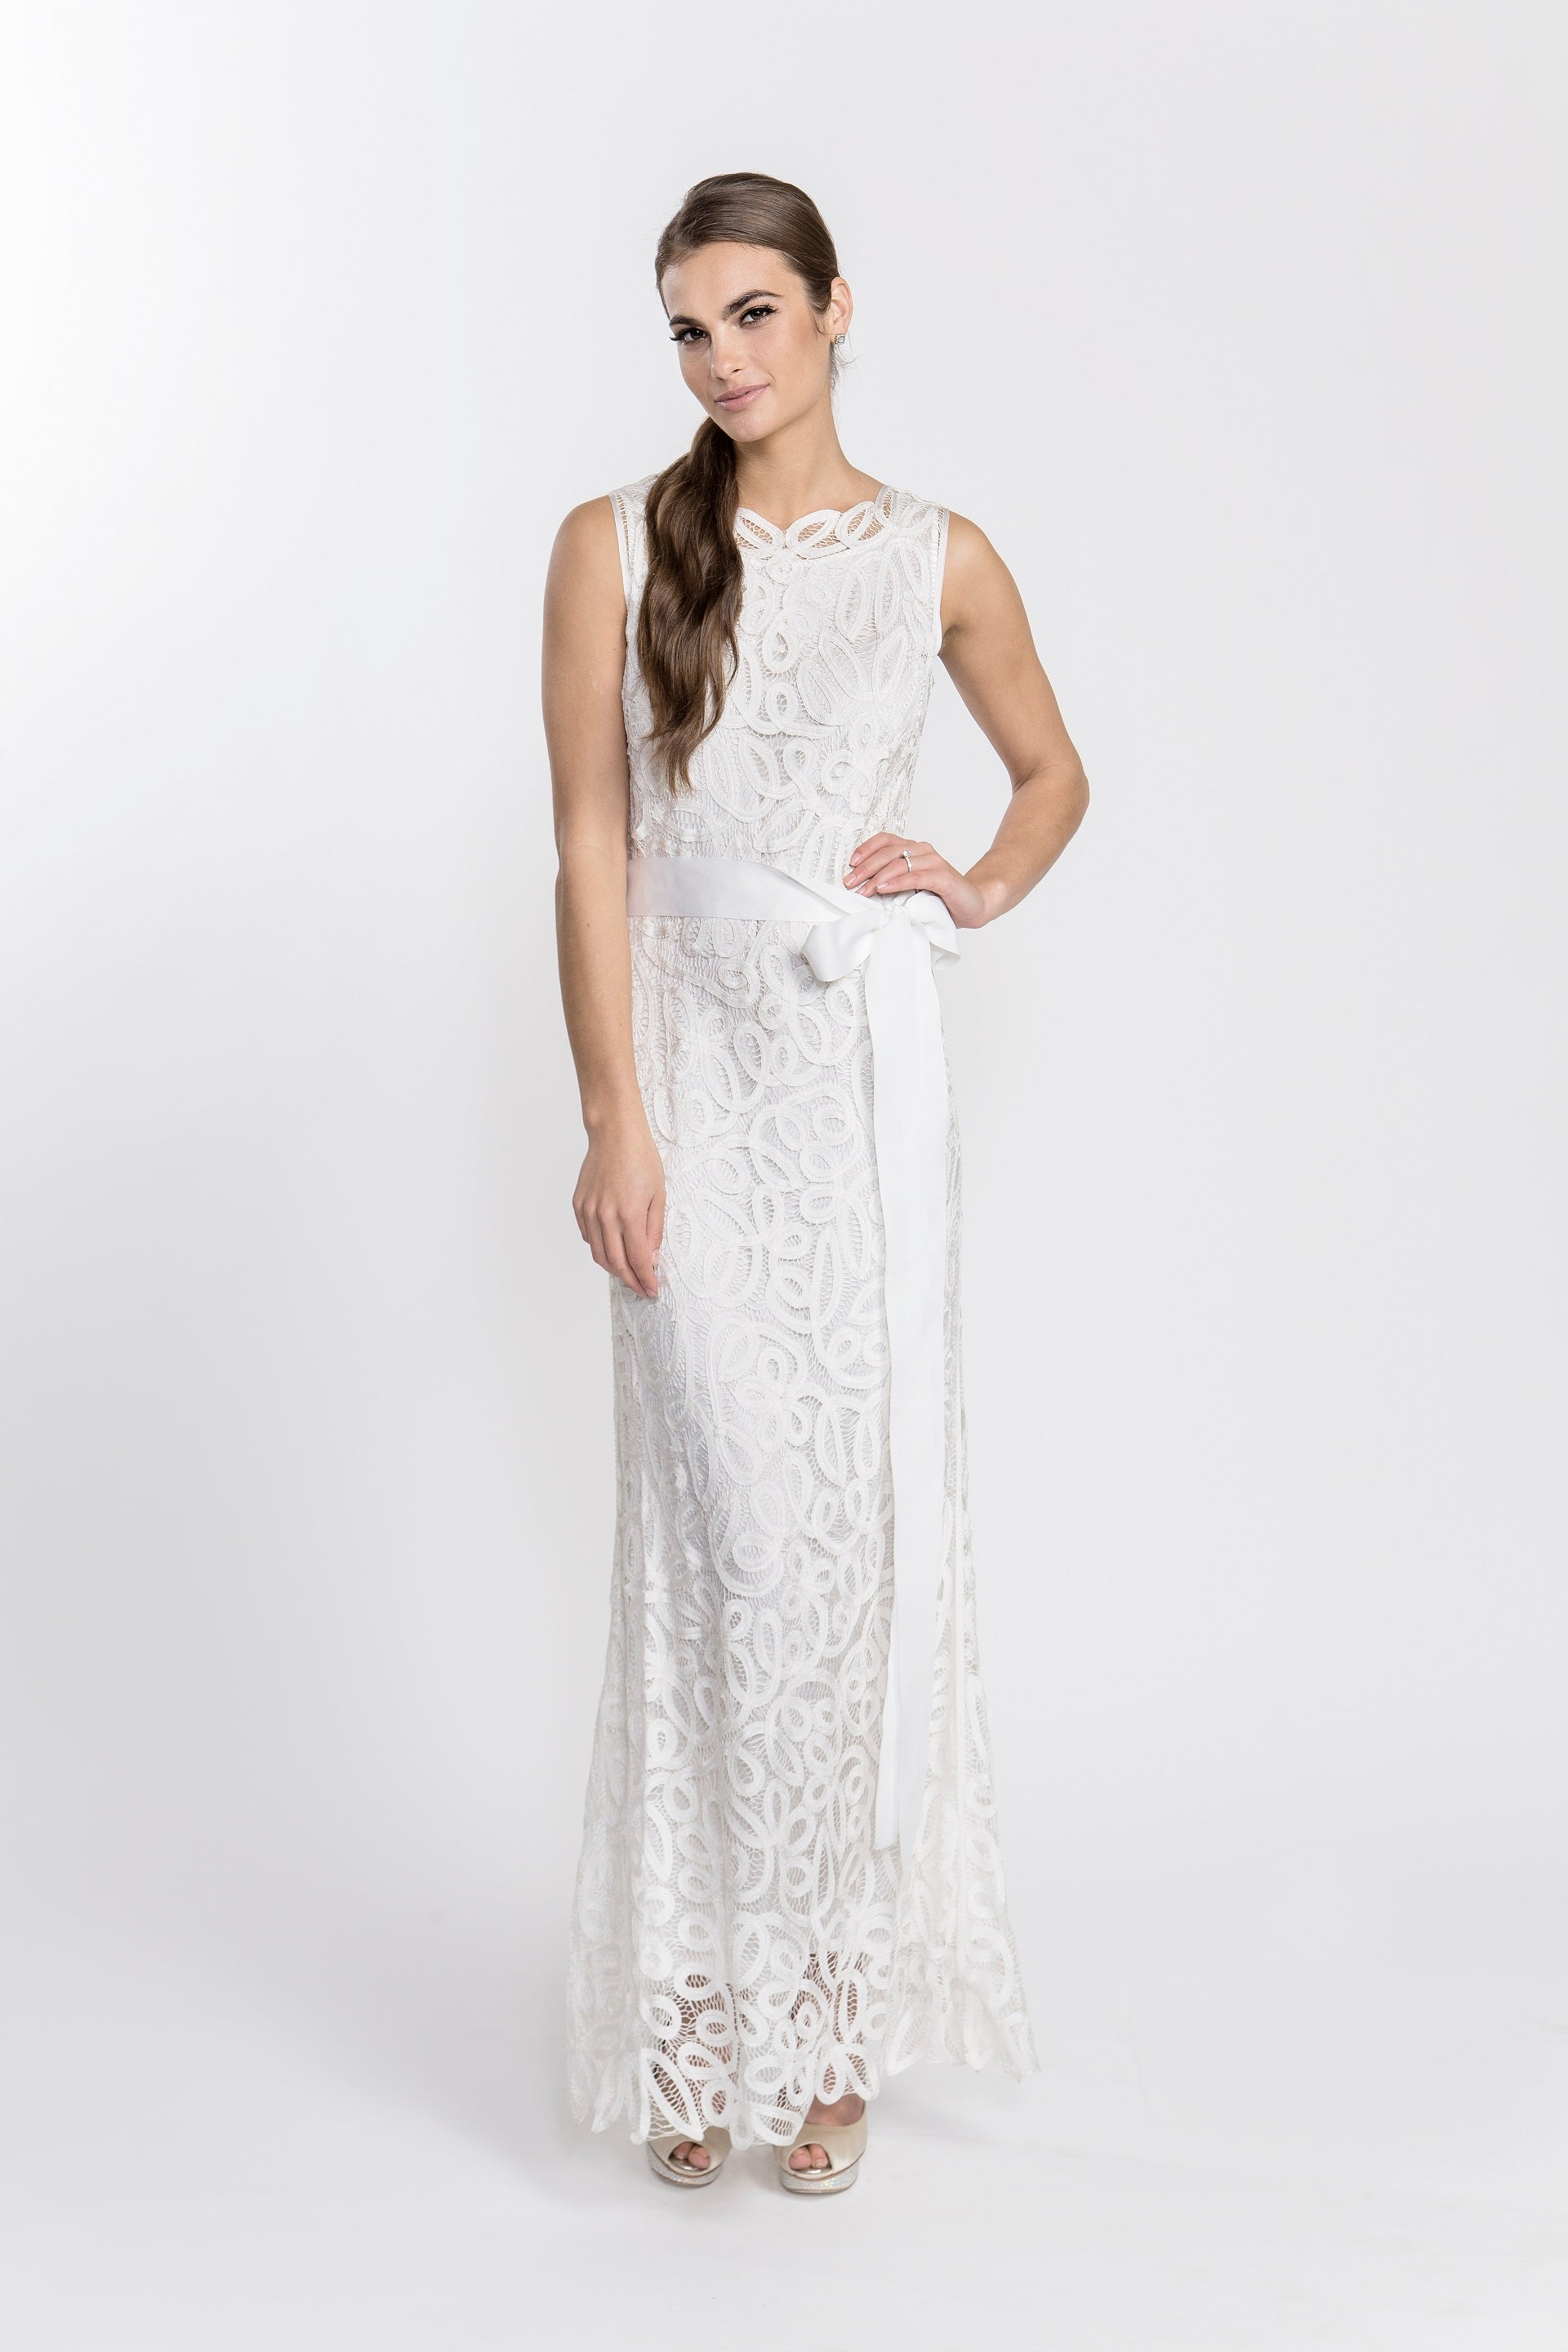 D1312 Crochet Sleeveless Long Dress Gown